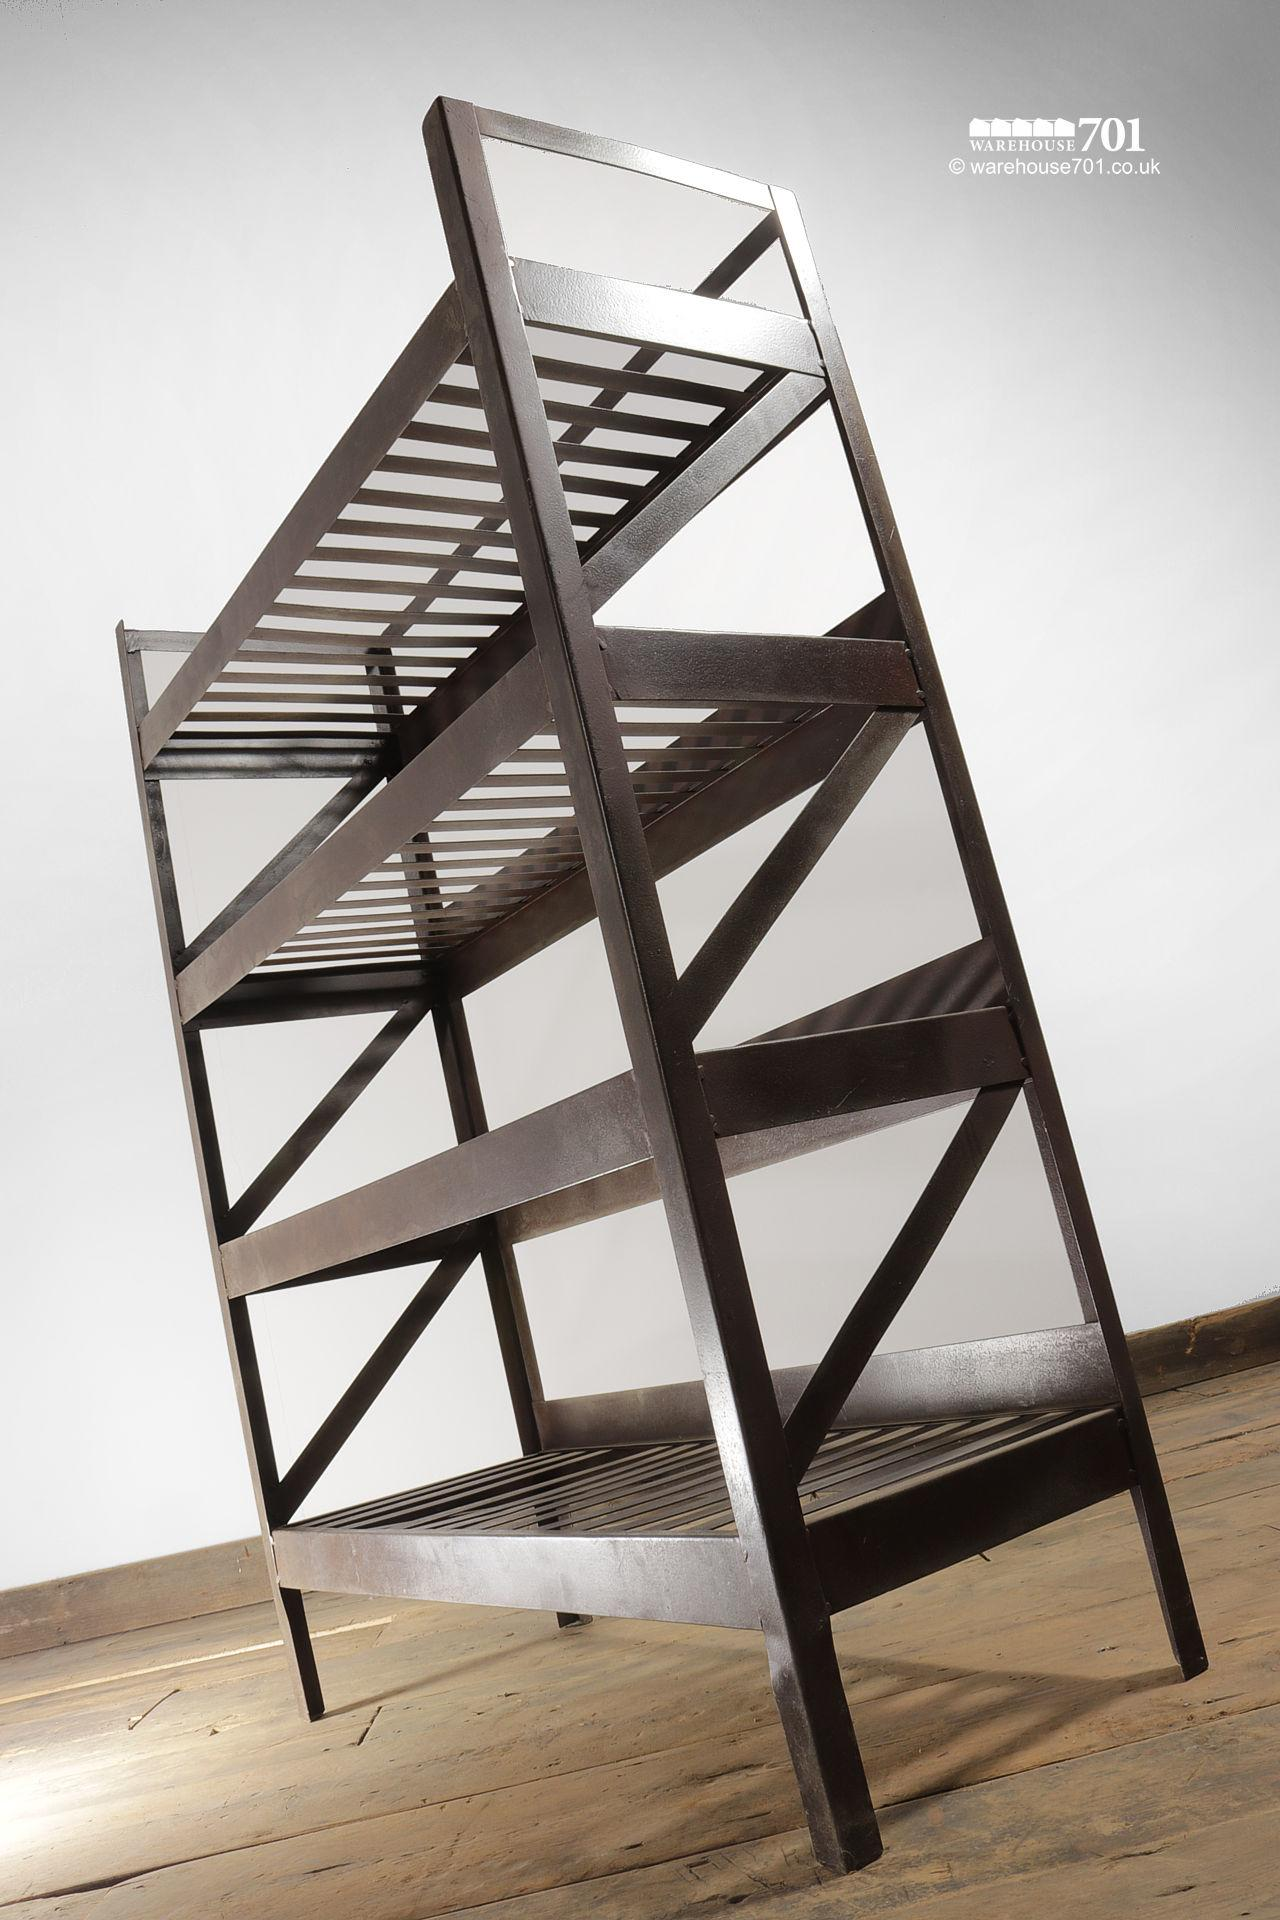 NEW Iron-Colour Metal Four Tier Slatted Shelving or Display Unit